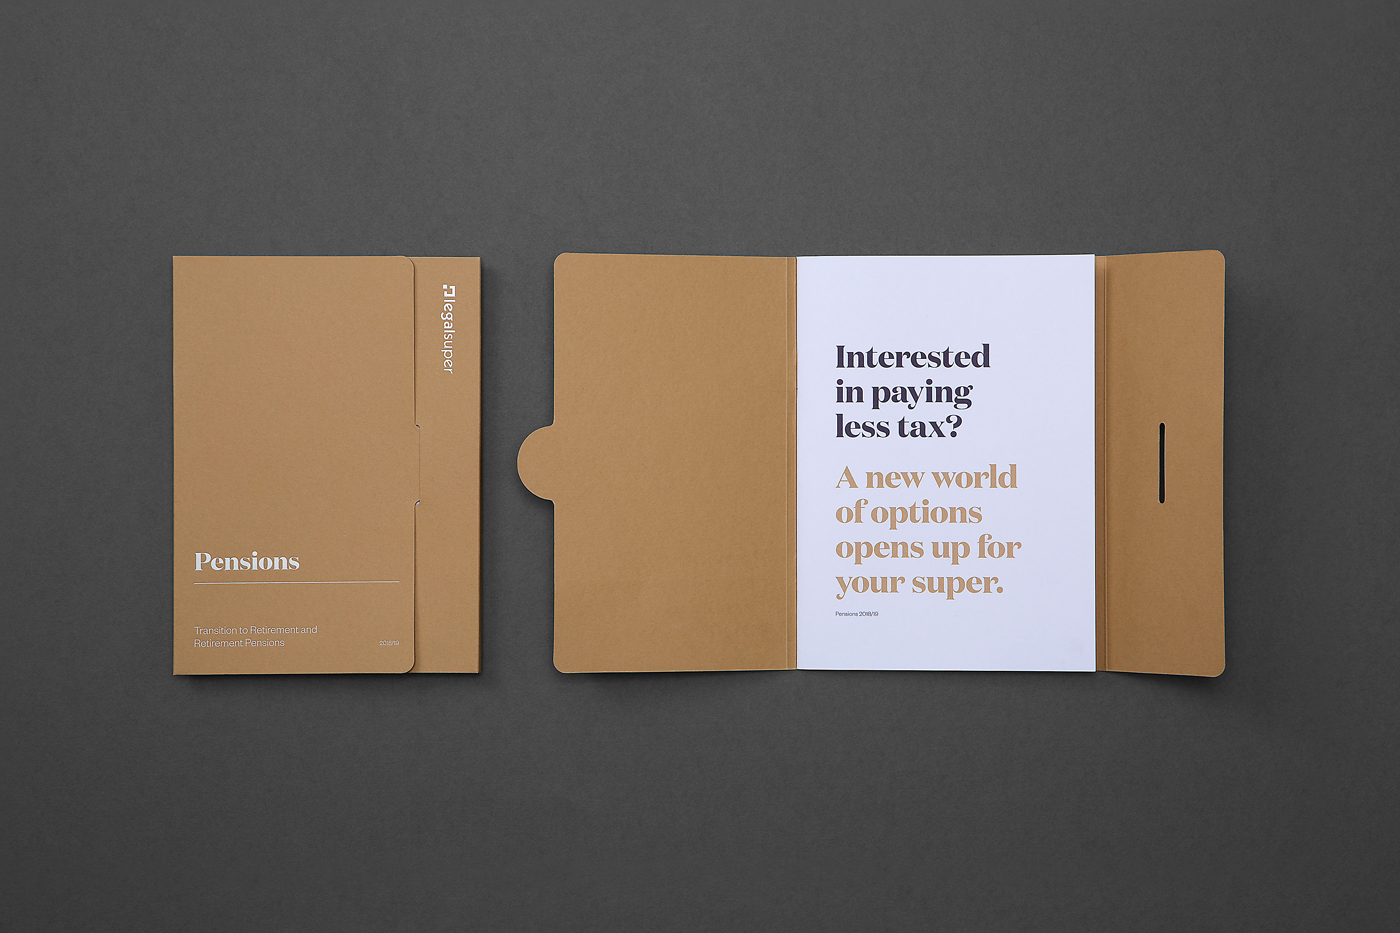 Object design for legalsuper booklet on Colorplan 2